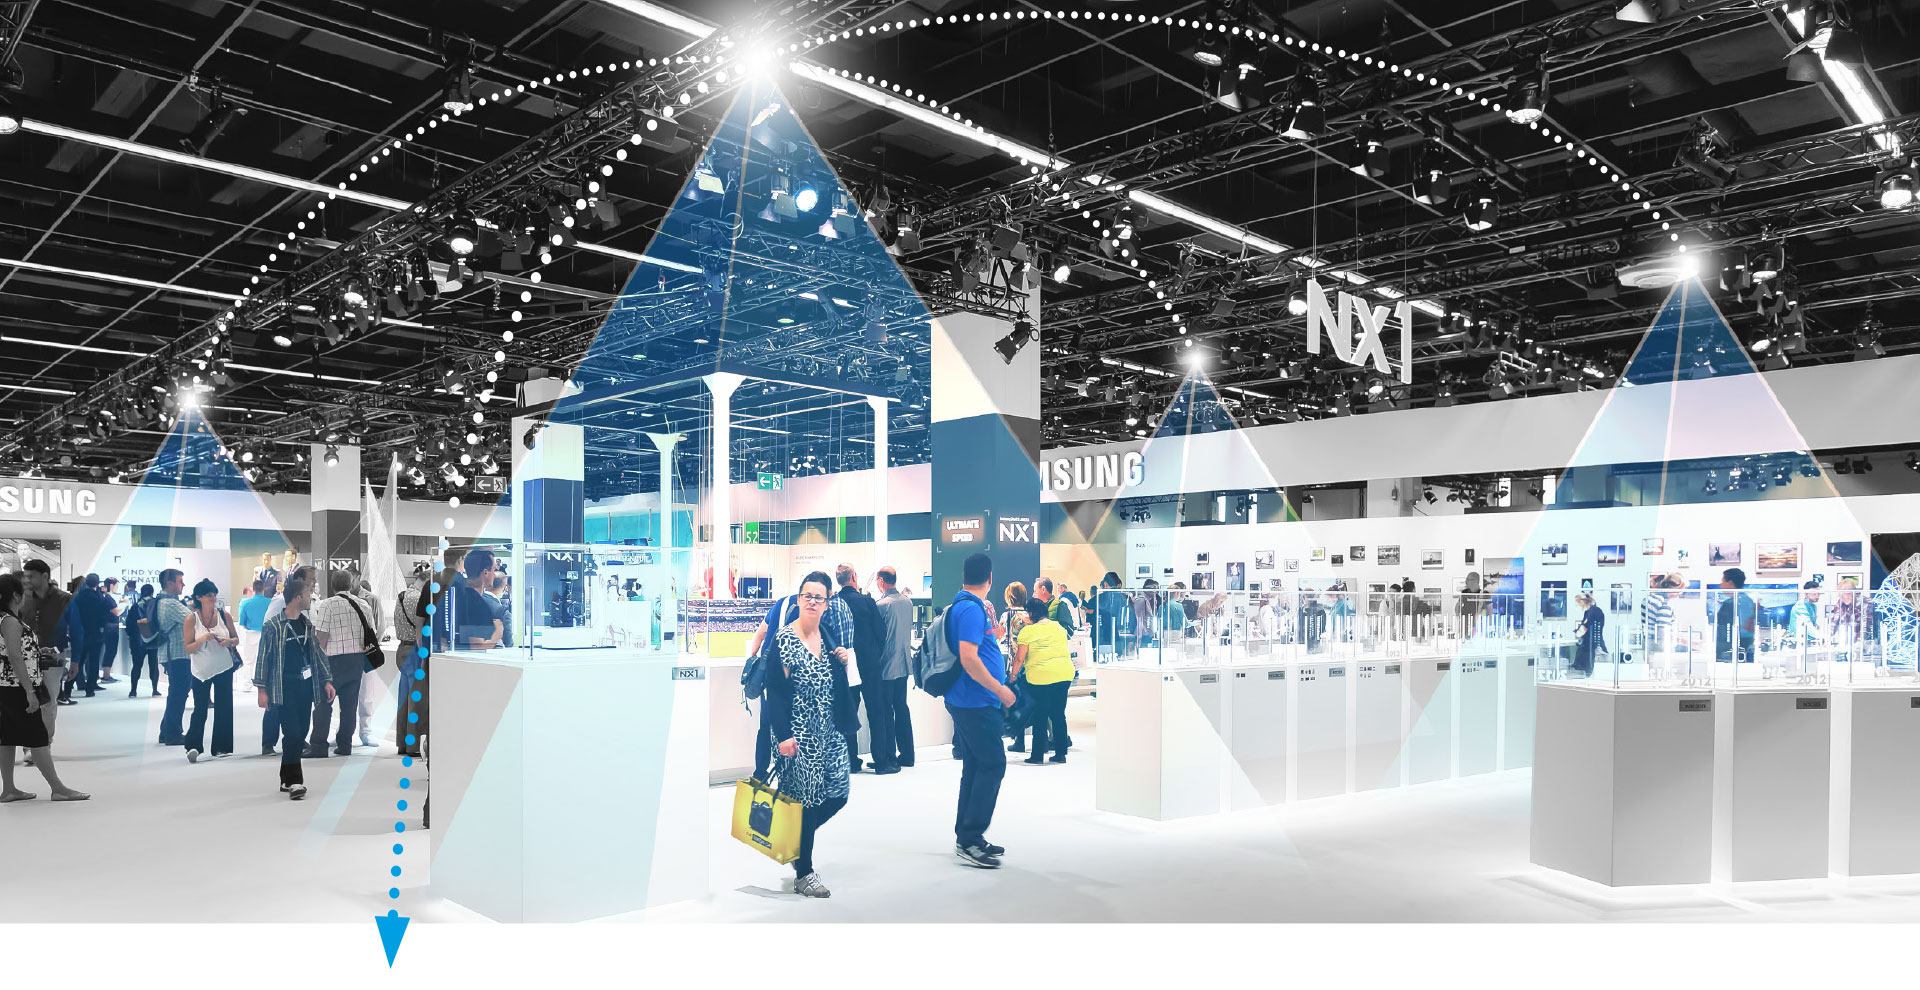 Exhibition Stand Photos : Smart exhibition stand oms iot systems